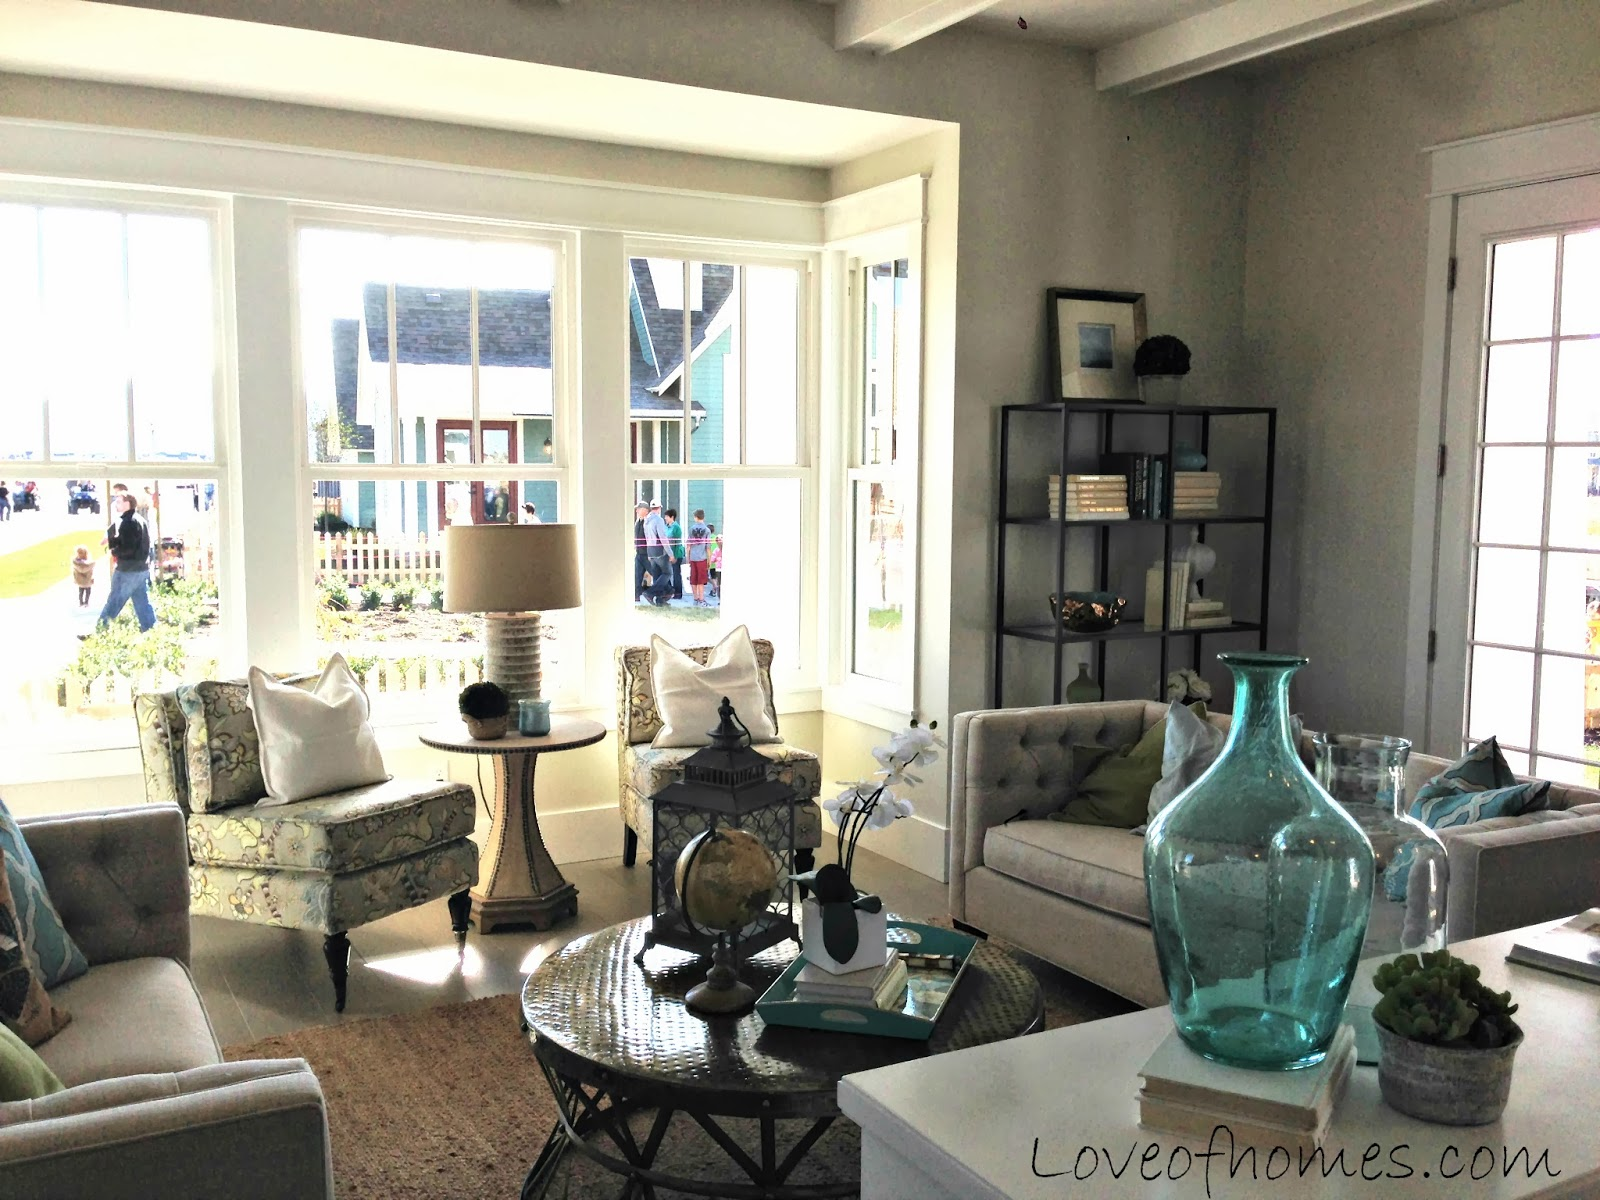 LOVE OF HOMES: Model Homes Tour....